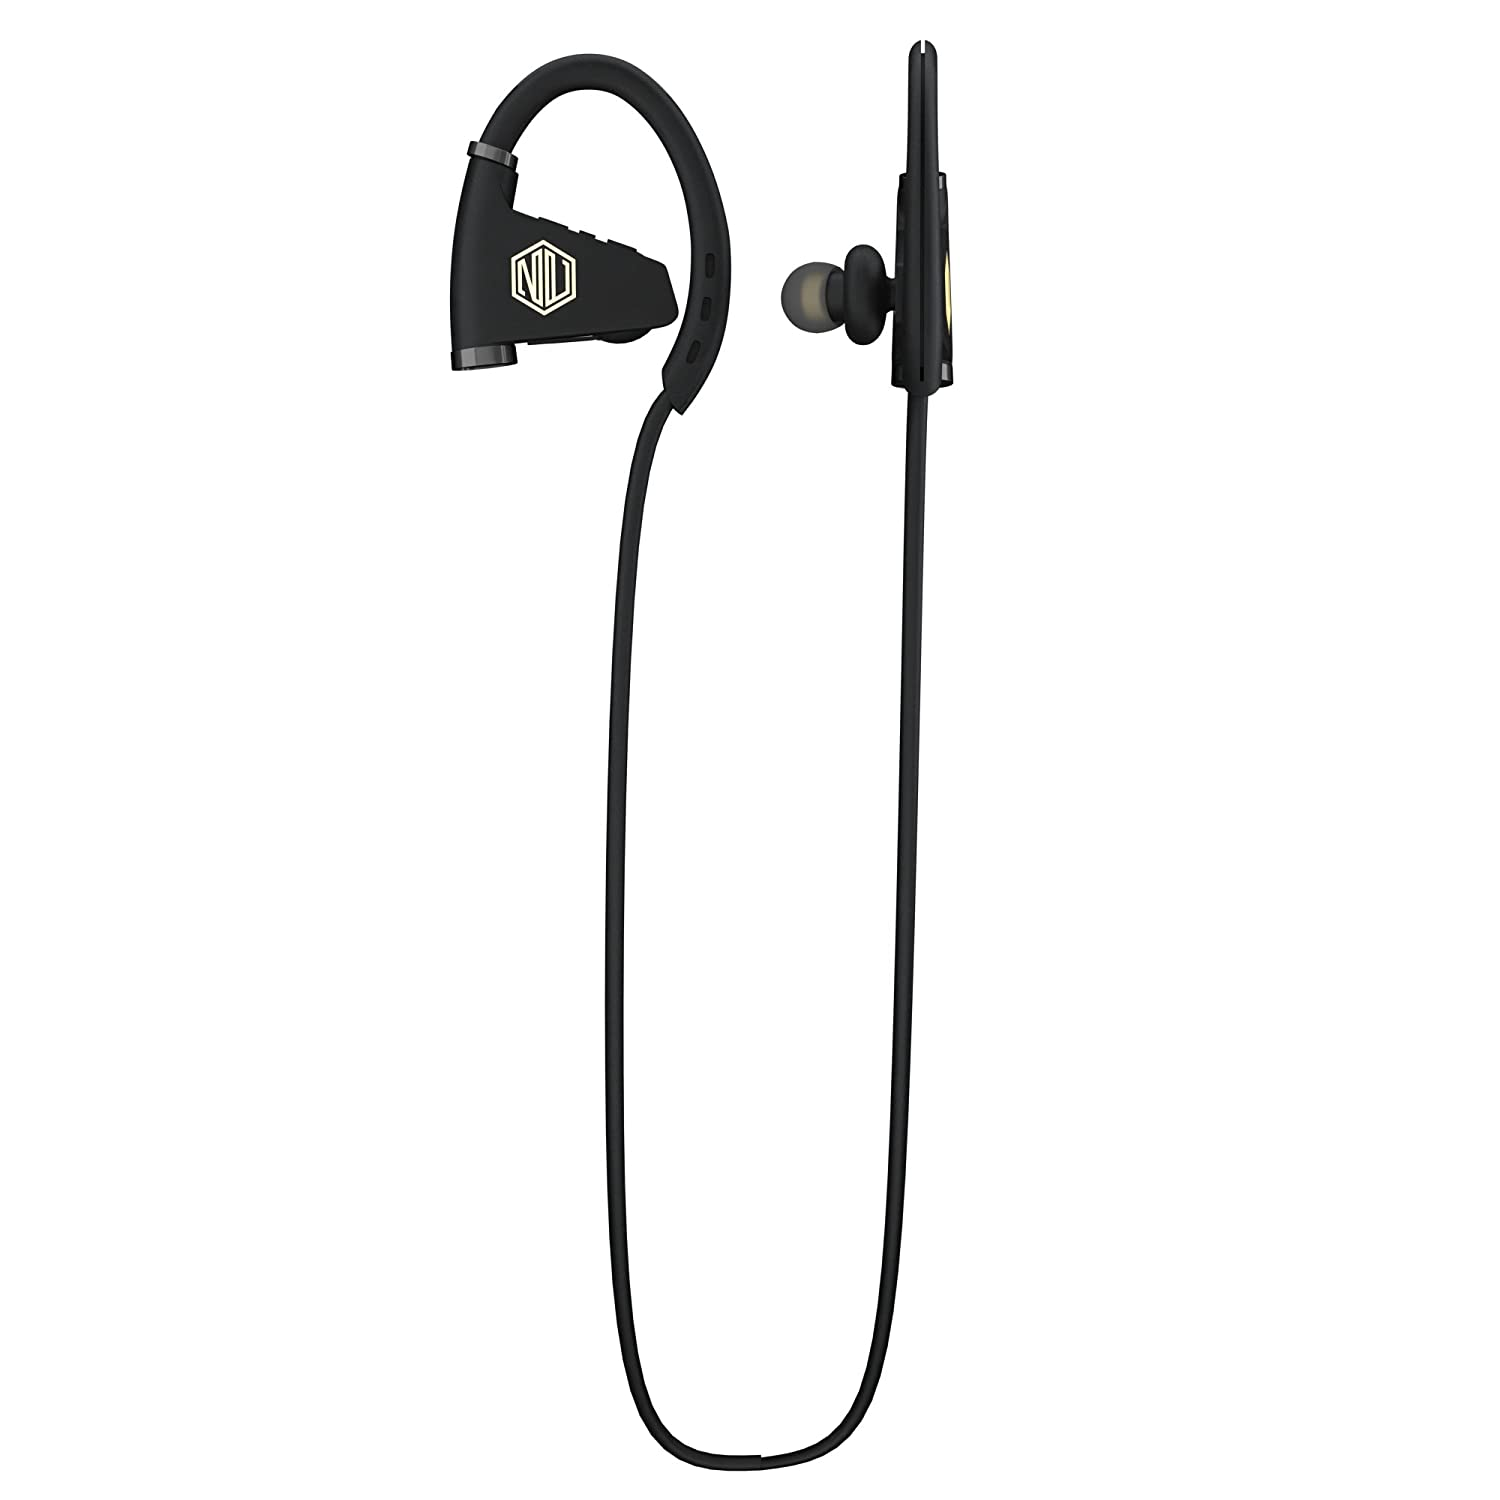 Nu Republic Nu Powr Wireless Earphones with Mic (Black) In-Ear Headphones at amazon